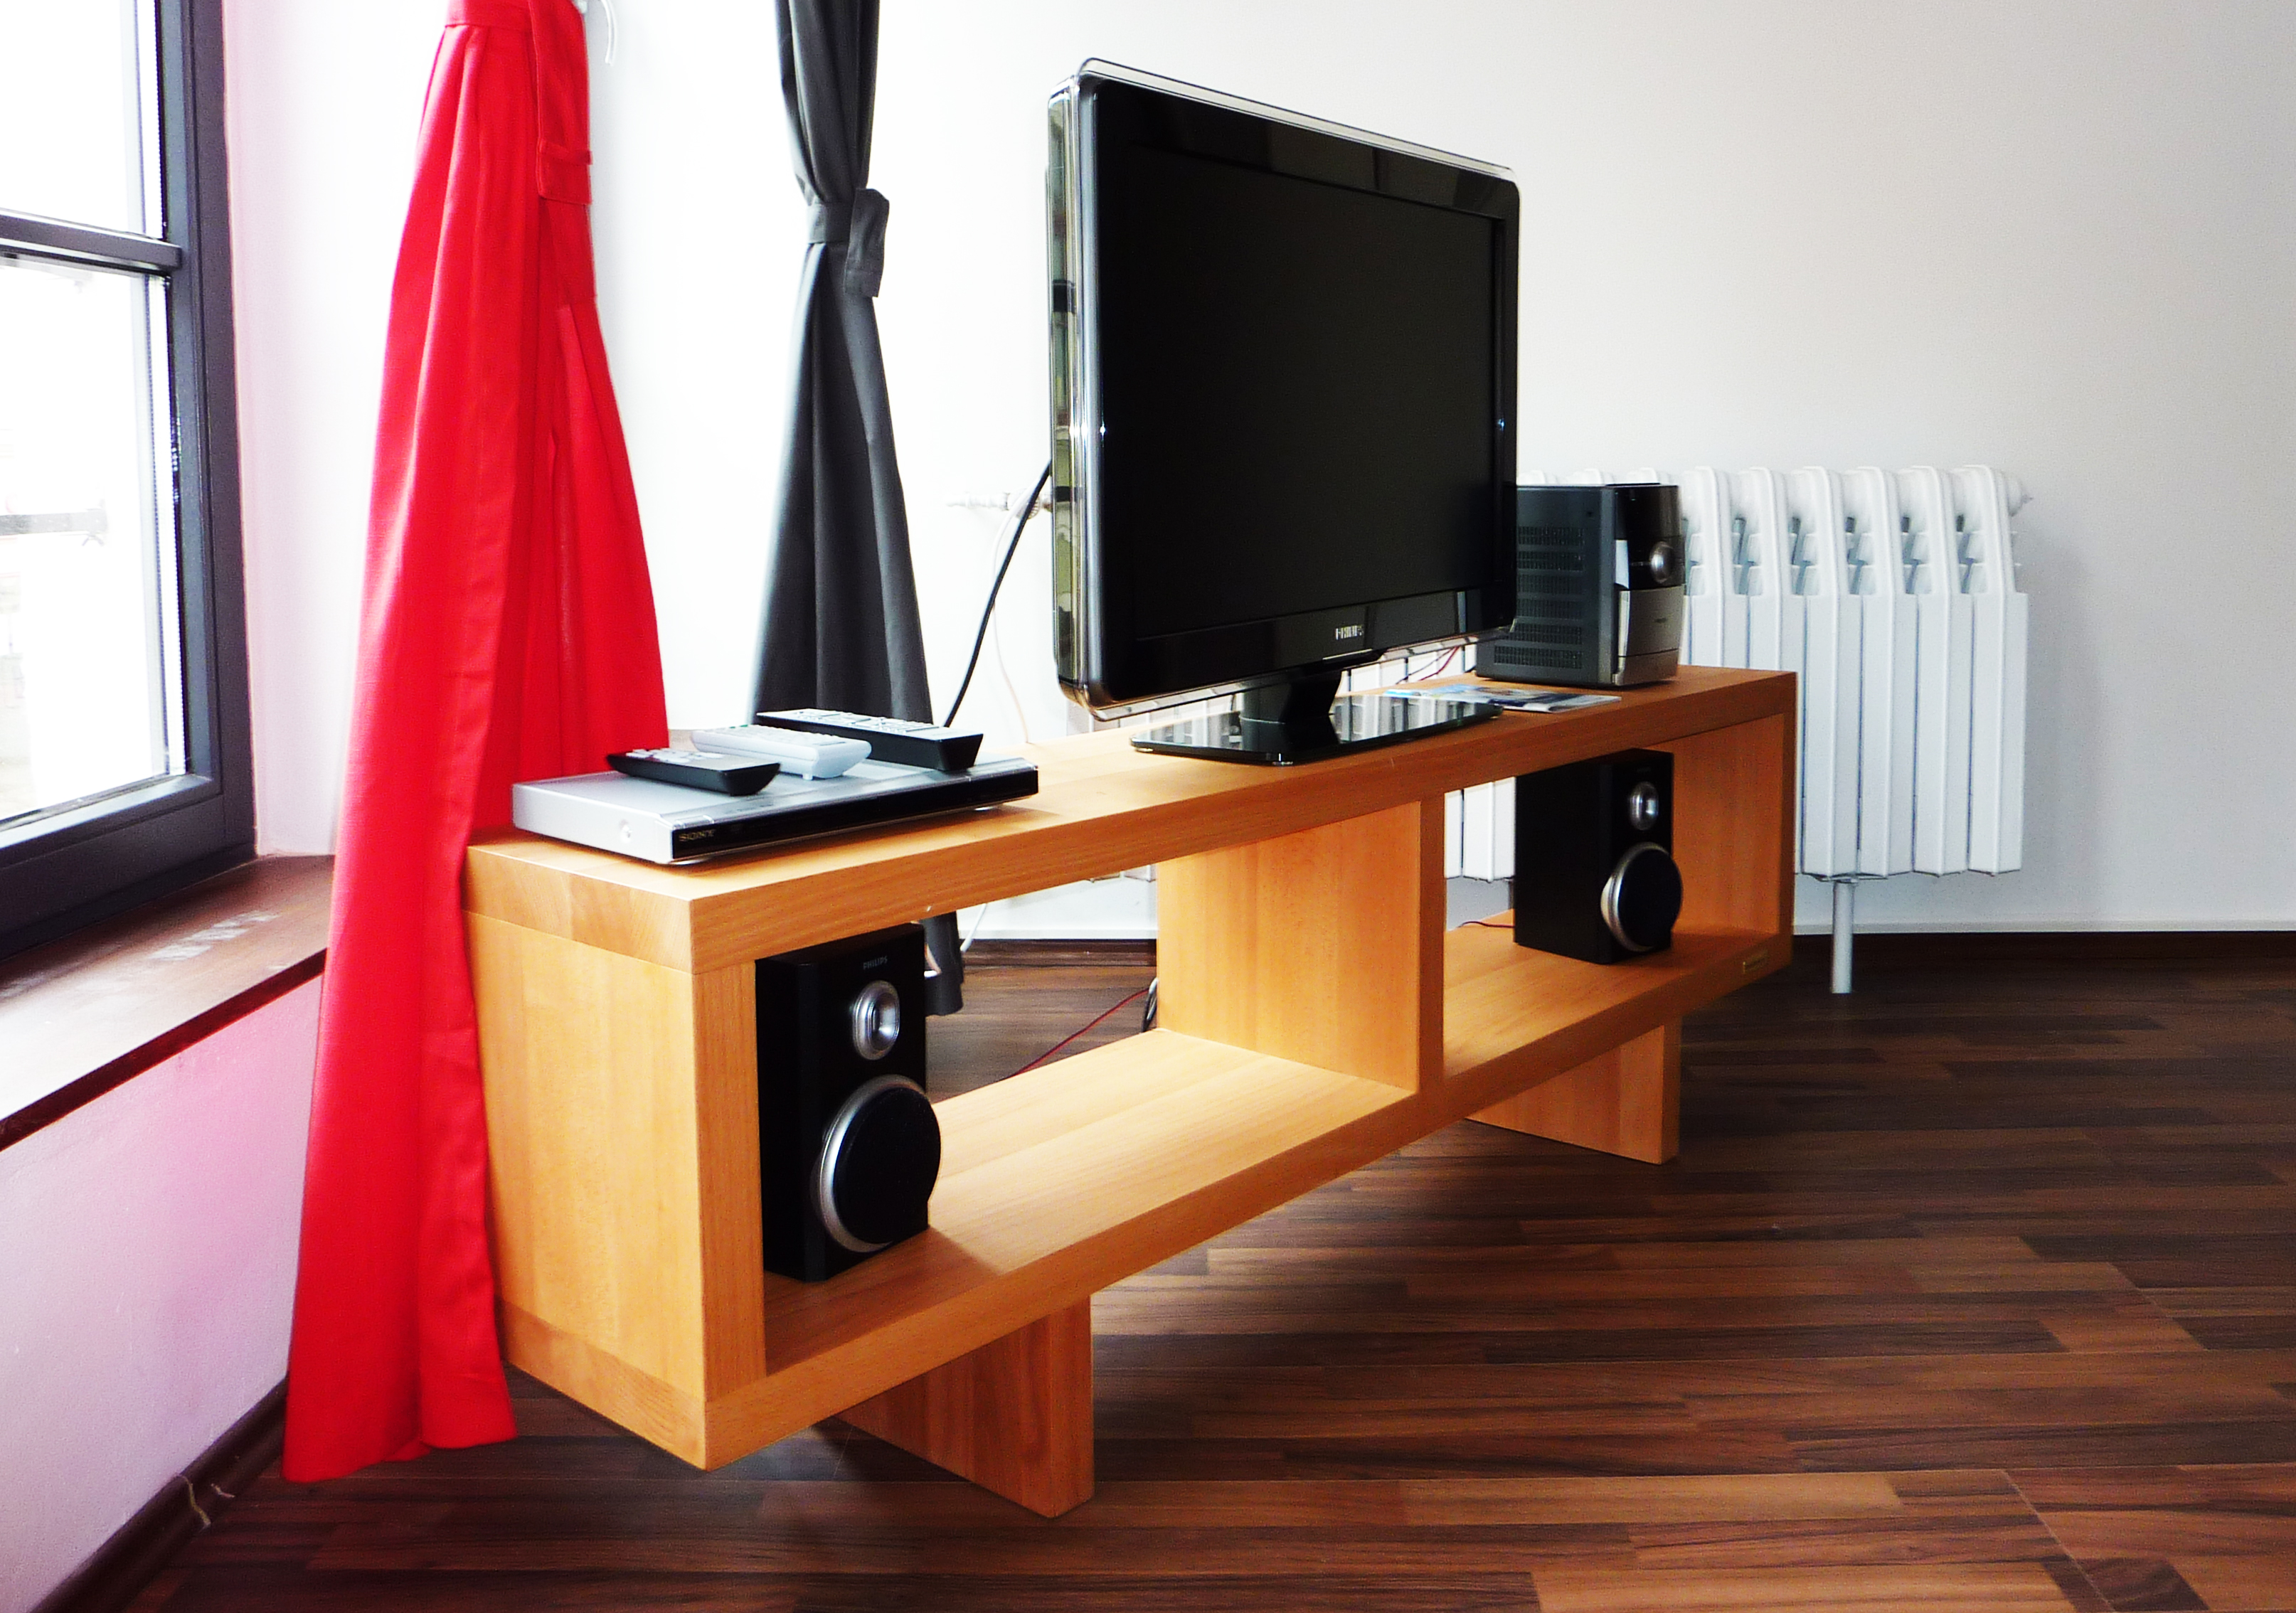 designer sideboard massiv holz eiche buche kiefer ahorn kommode billig. Black Bedroom Furniture Sets. Home Design Ideas